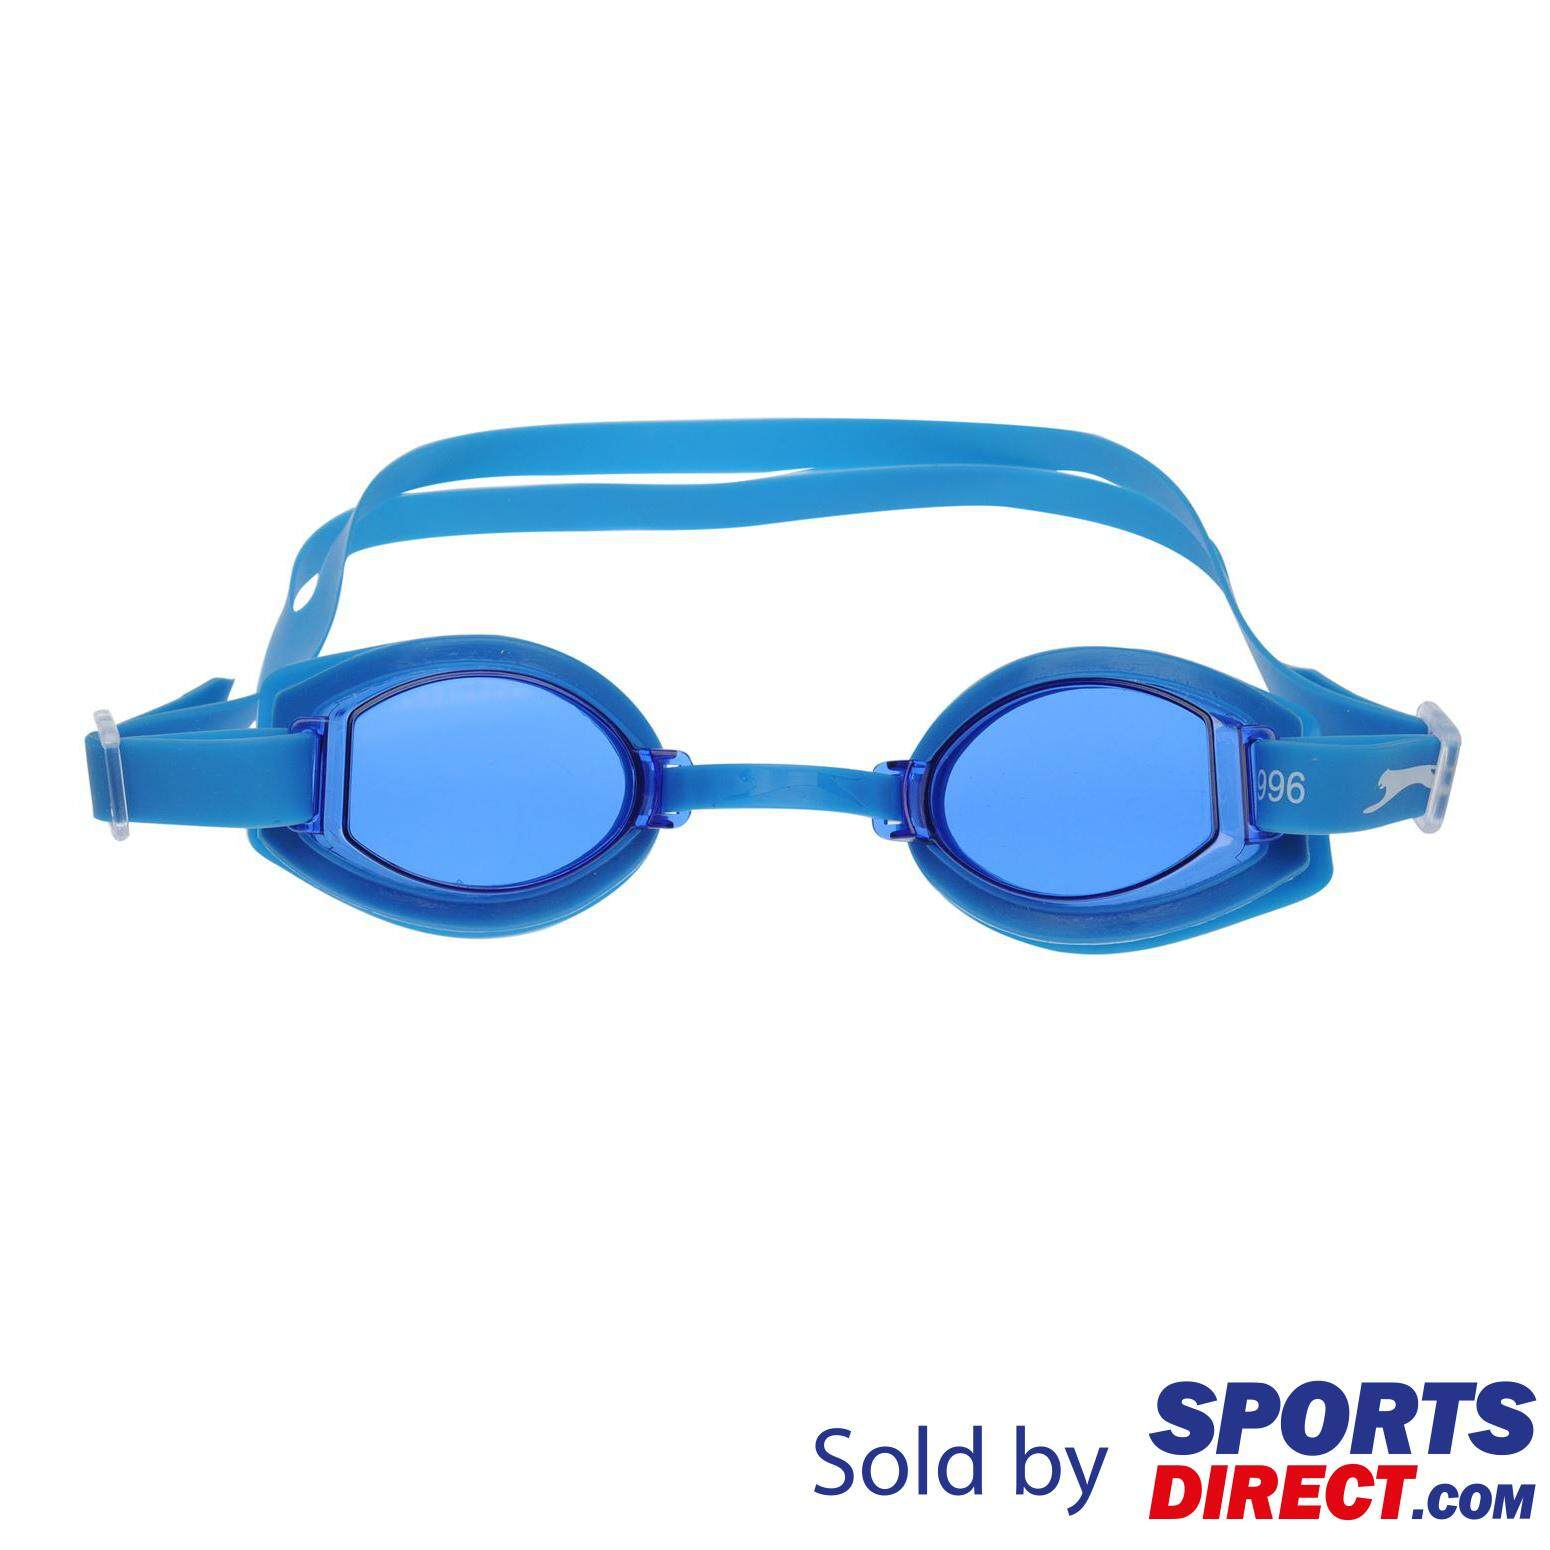 baac7703d3c Swiming Goggles - Buy Swiming Goggles at Best Price in Malaysia ...